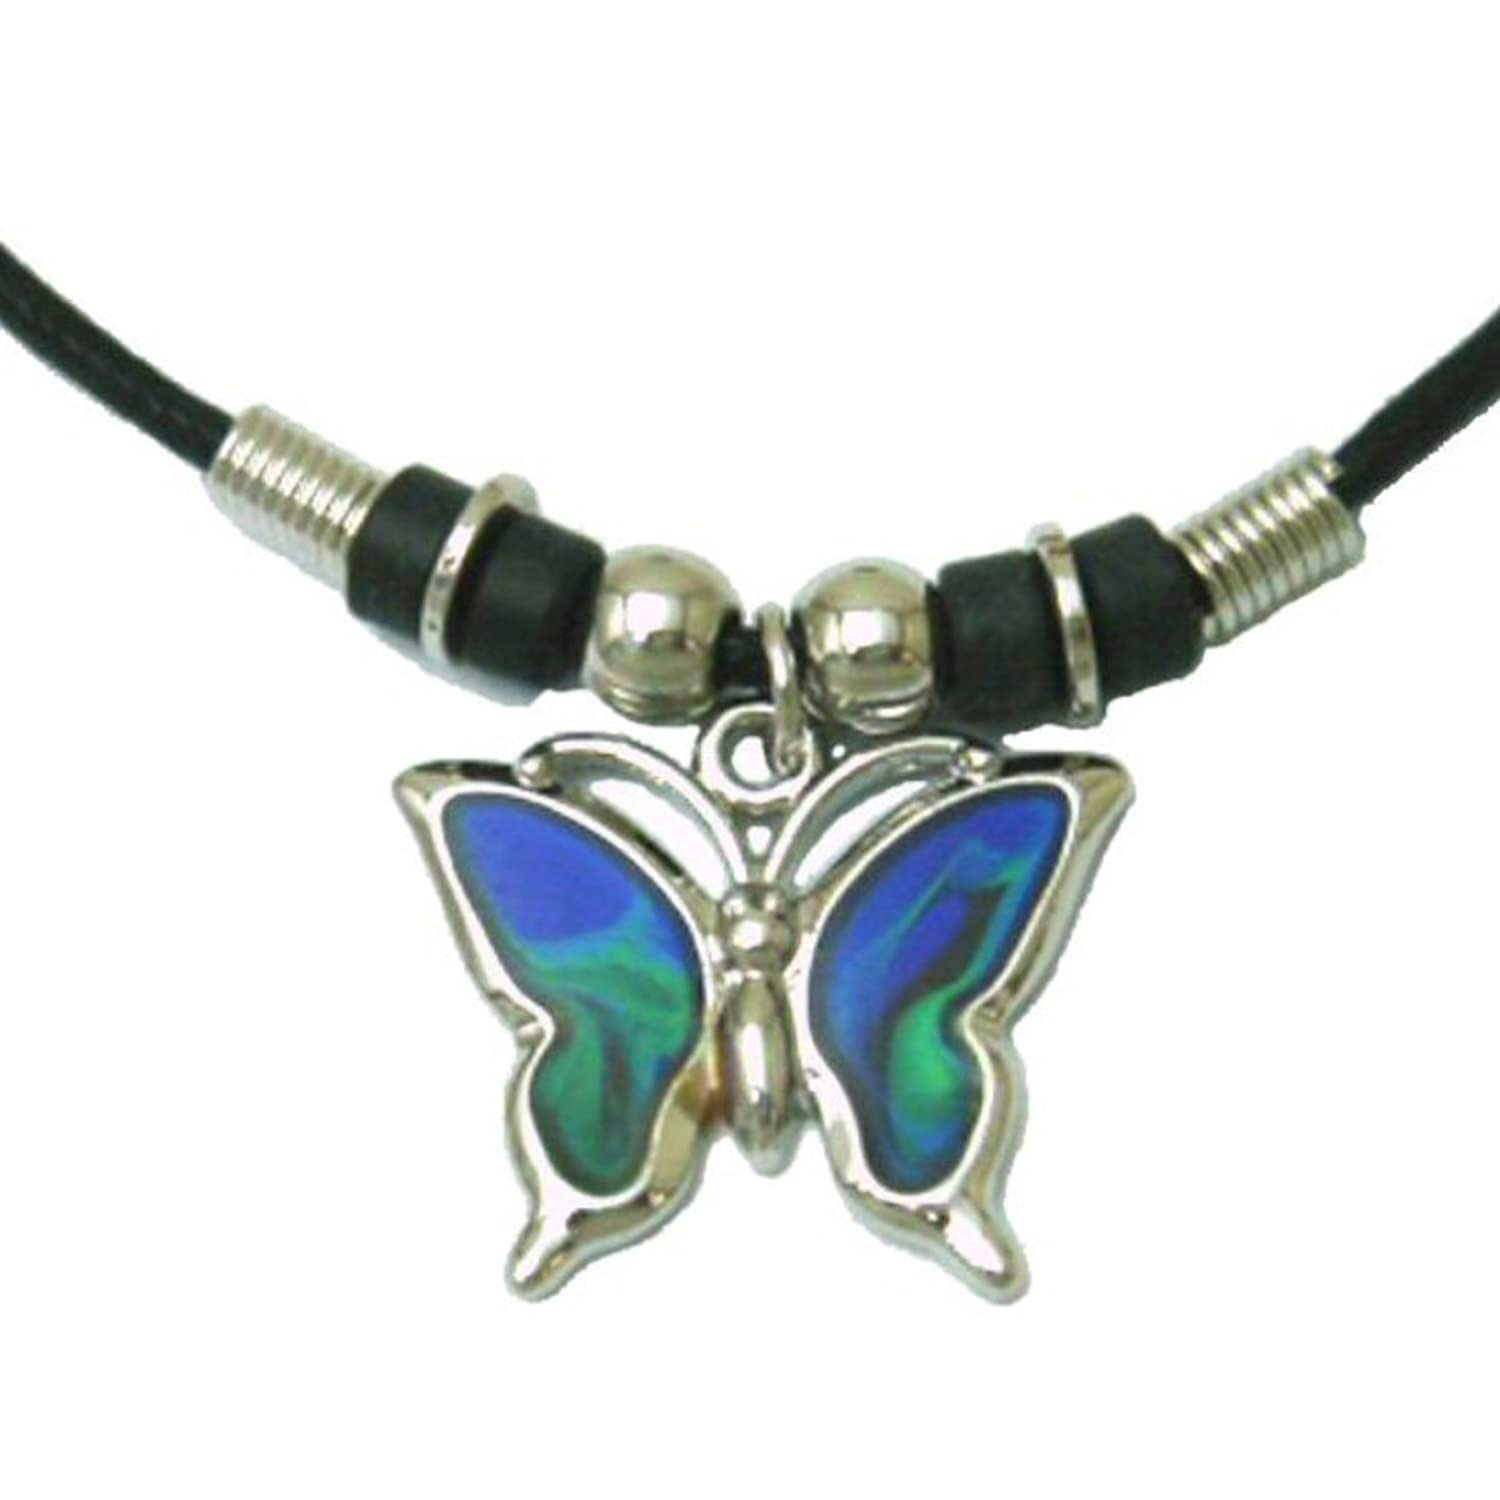 Tapp collections mood pendant necklace butterfly amazon tapp collections mood pendant necklace butterfly amazon jewellery aloadofball Gallery